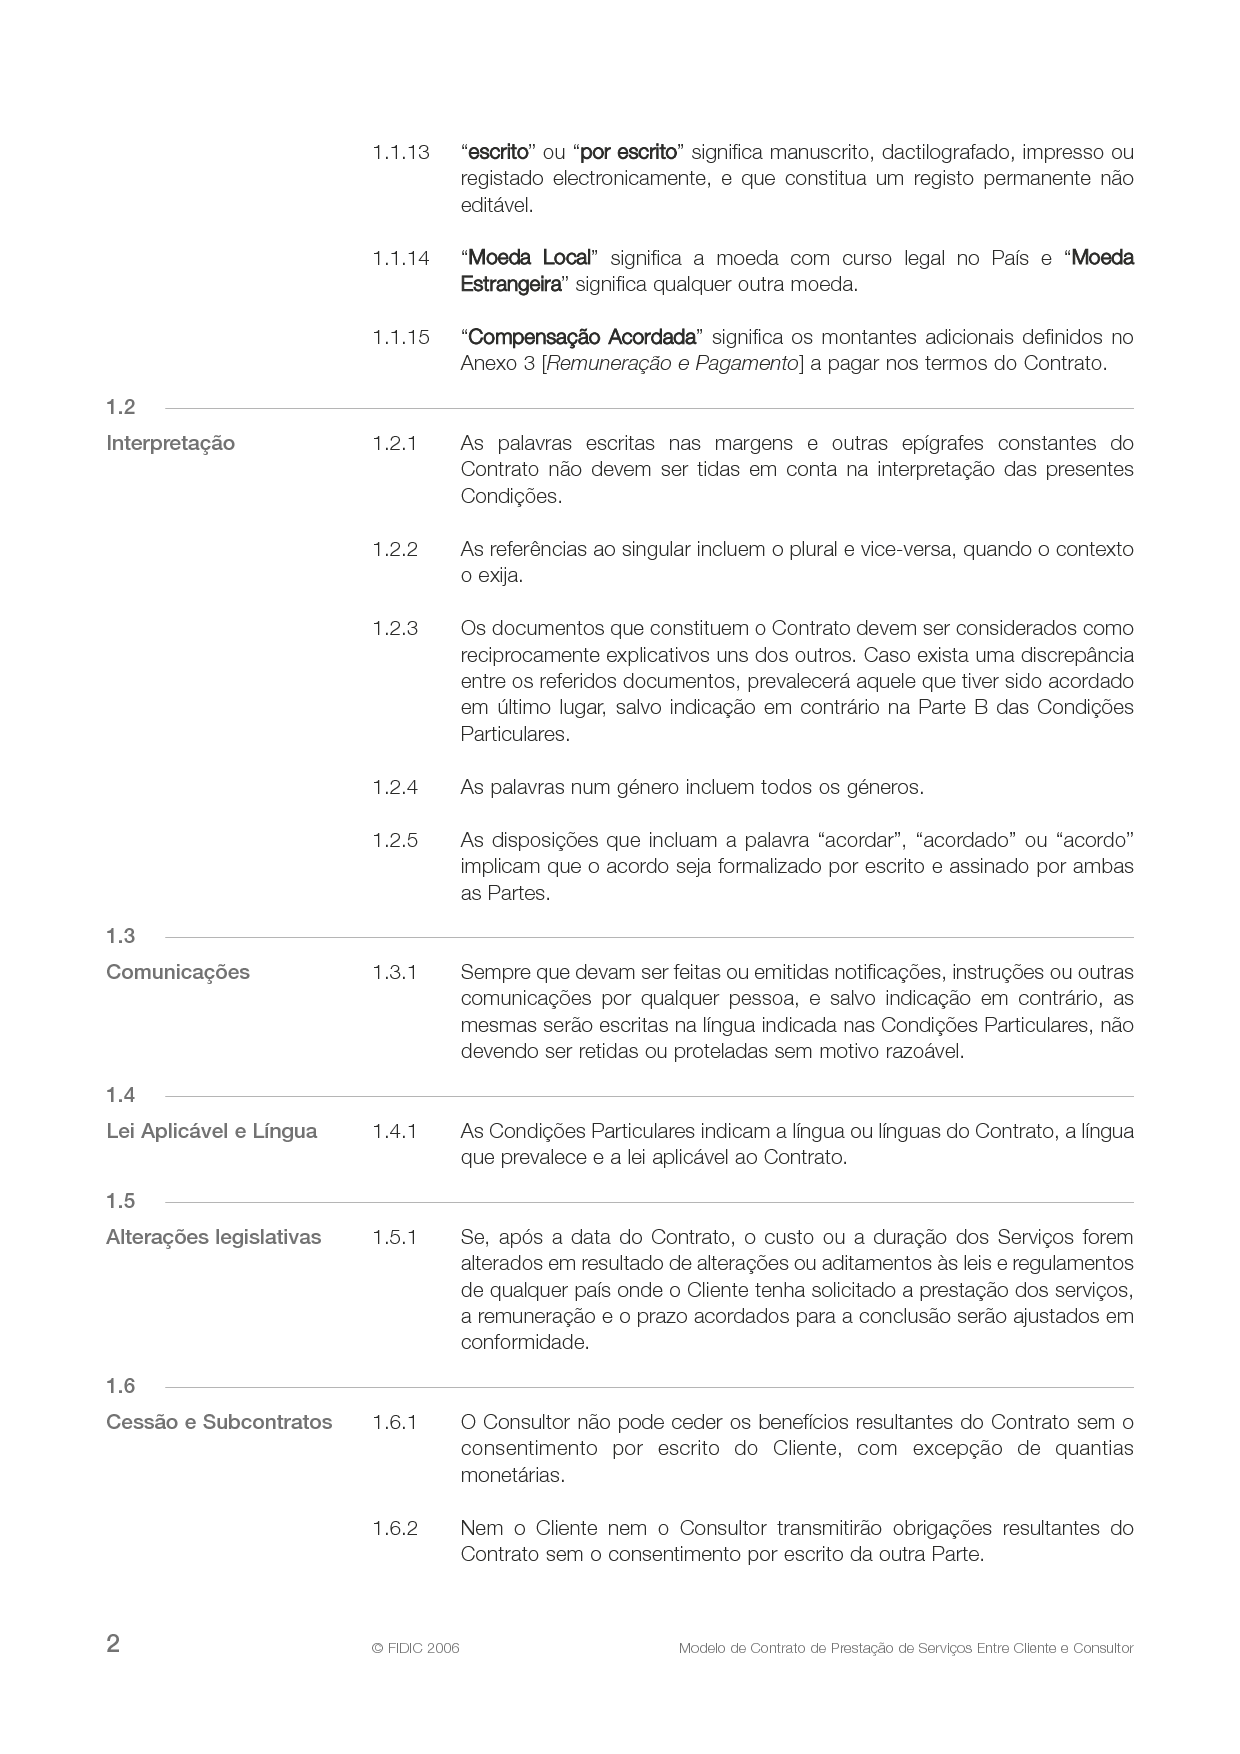 clientconsultant model services agreement 4th ed 2006